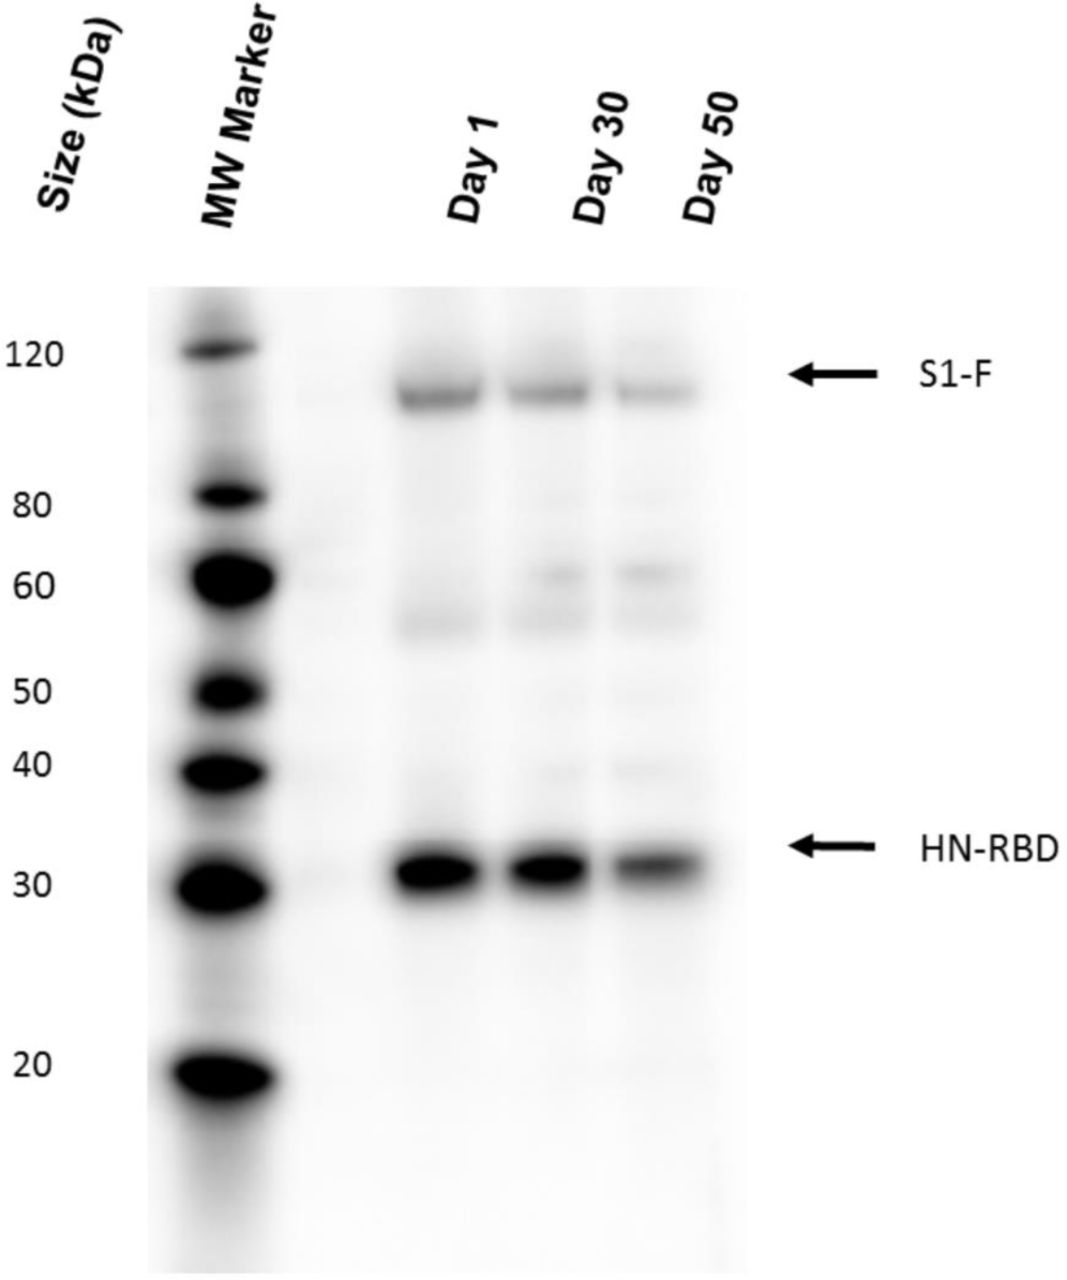 S tability of the lyophilized NDV vaccine. The expression of S1-F and HN-RBD proteins in Vero E6 cells infected with the lyophilized NDV vaccine was confirmed at day 1, 30, and 50 days post-lyophilized by Western blot assay using a rabbit antibody specific to SARS-CoV-2 RBD protein and Anti Rabbit IgG conjugated to HRP. The black arrow indicates the expected protein band.